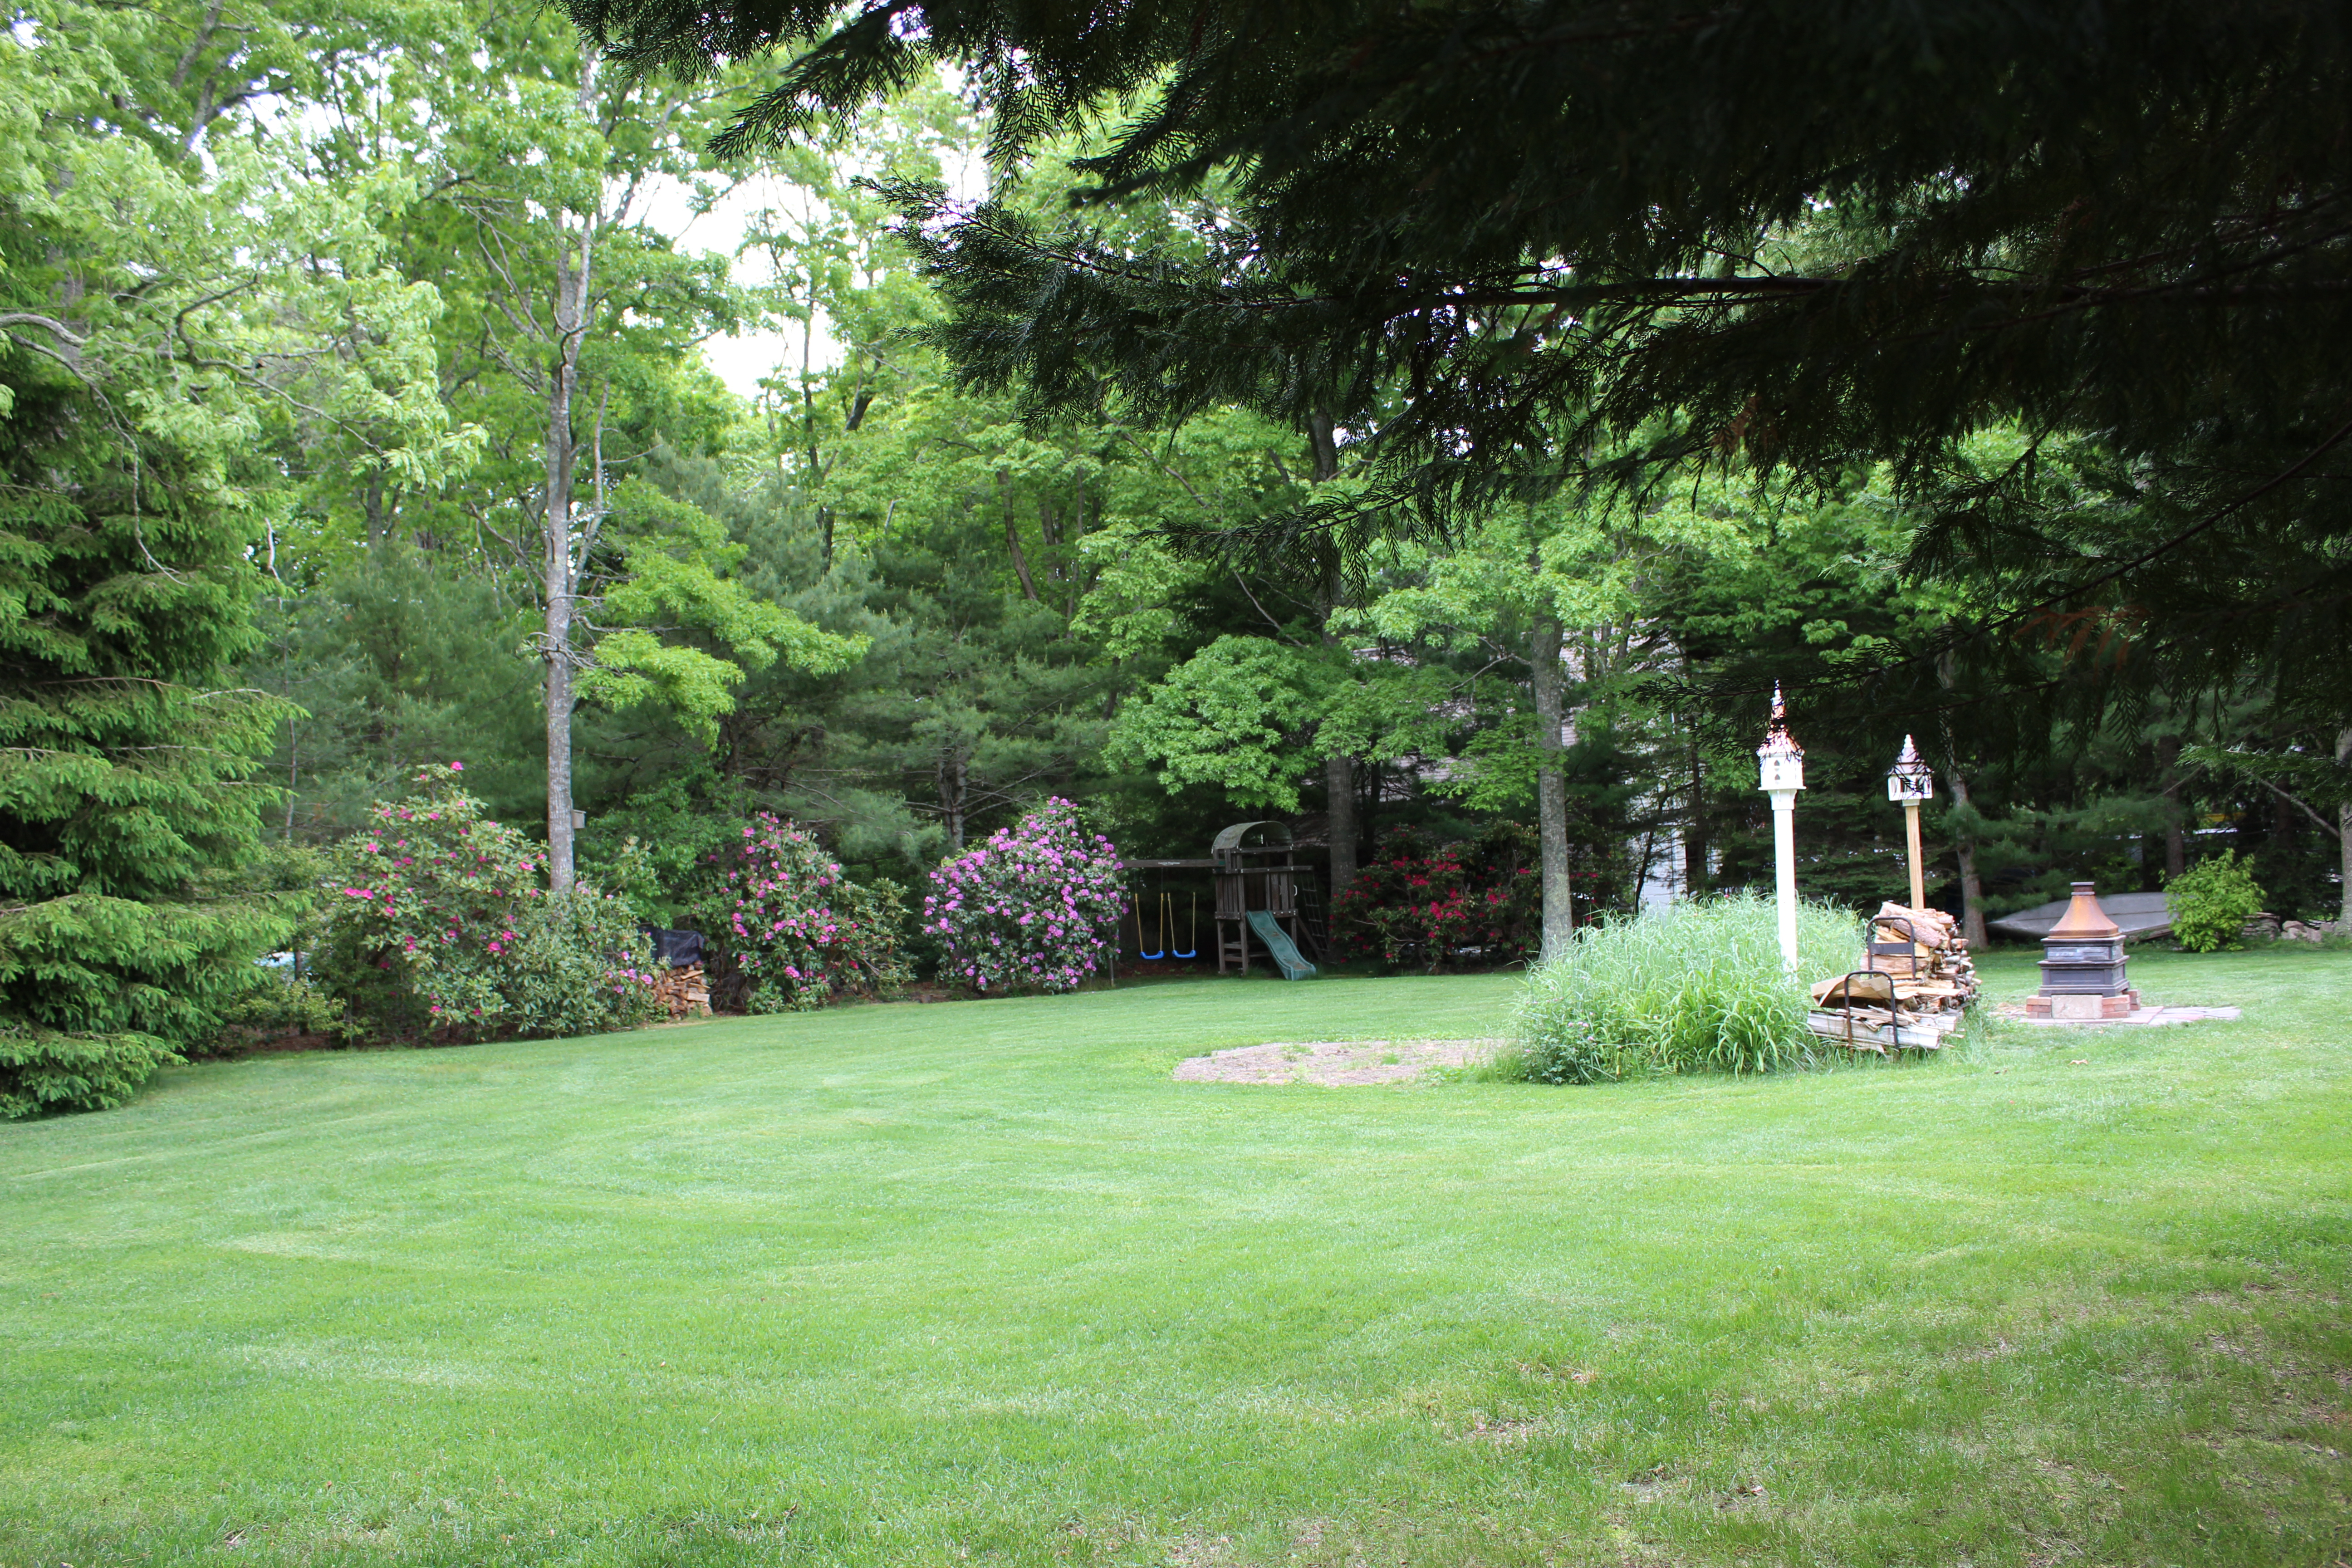 Fenced In Backyard with Swing Set, Turtle Cove, Cape Cod